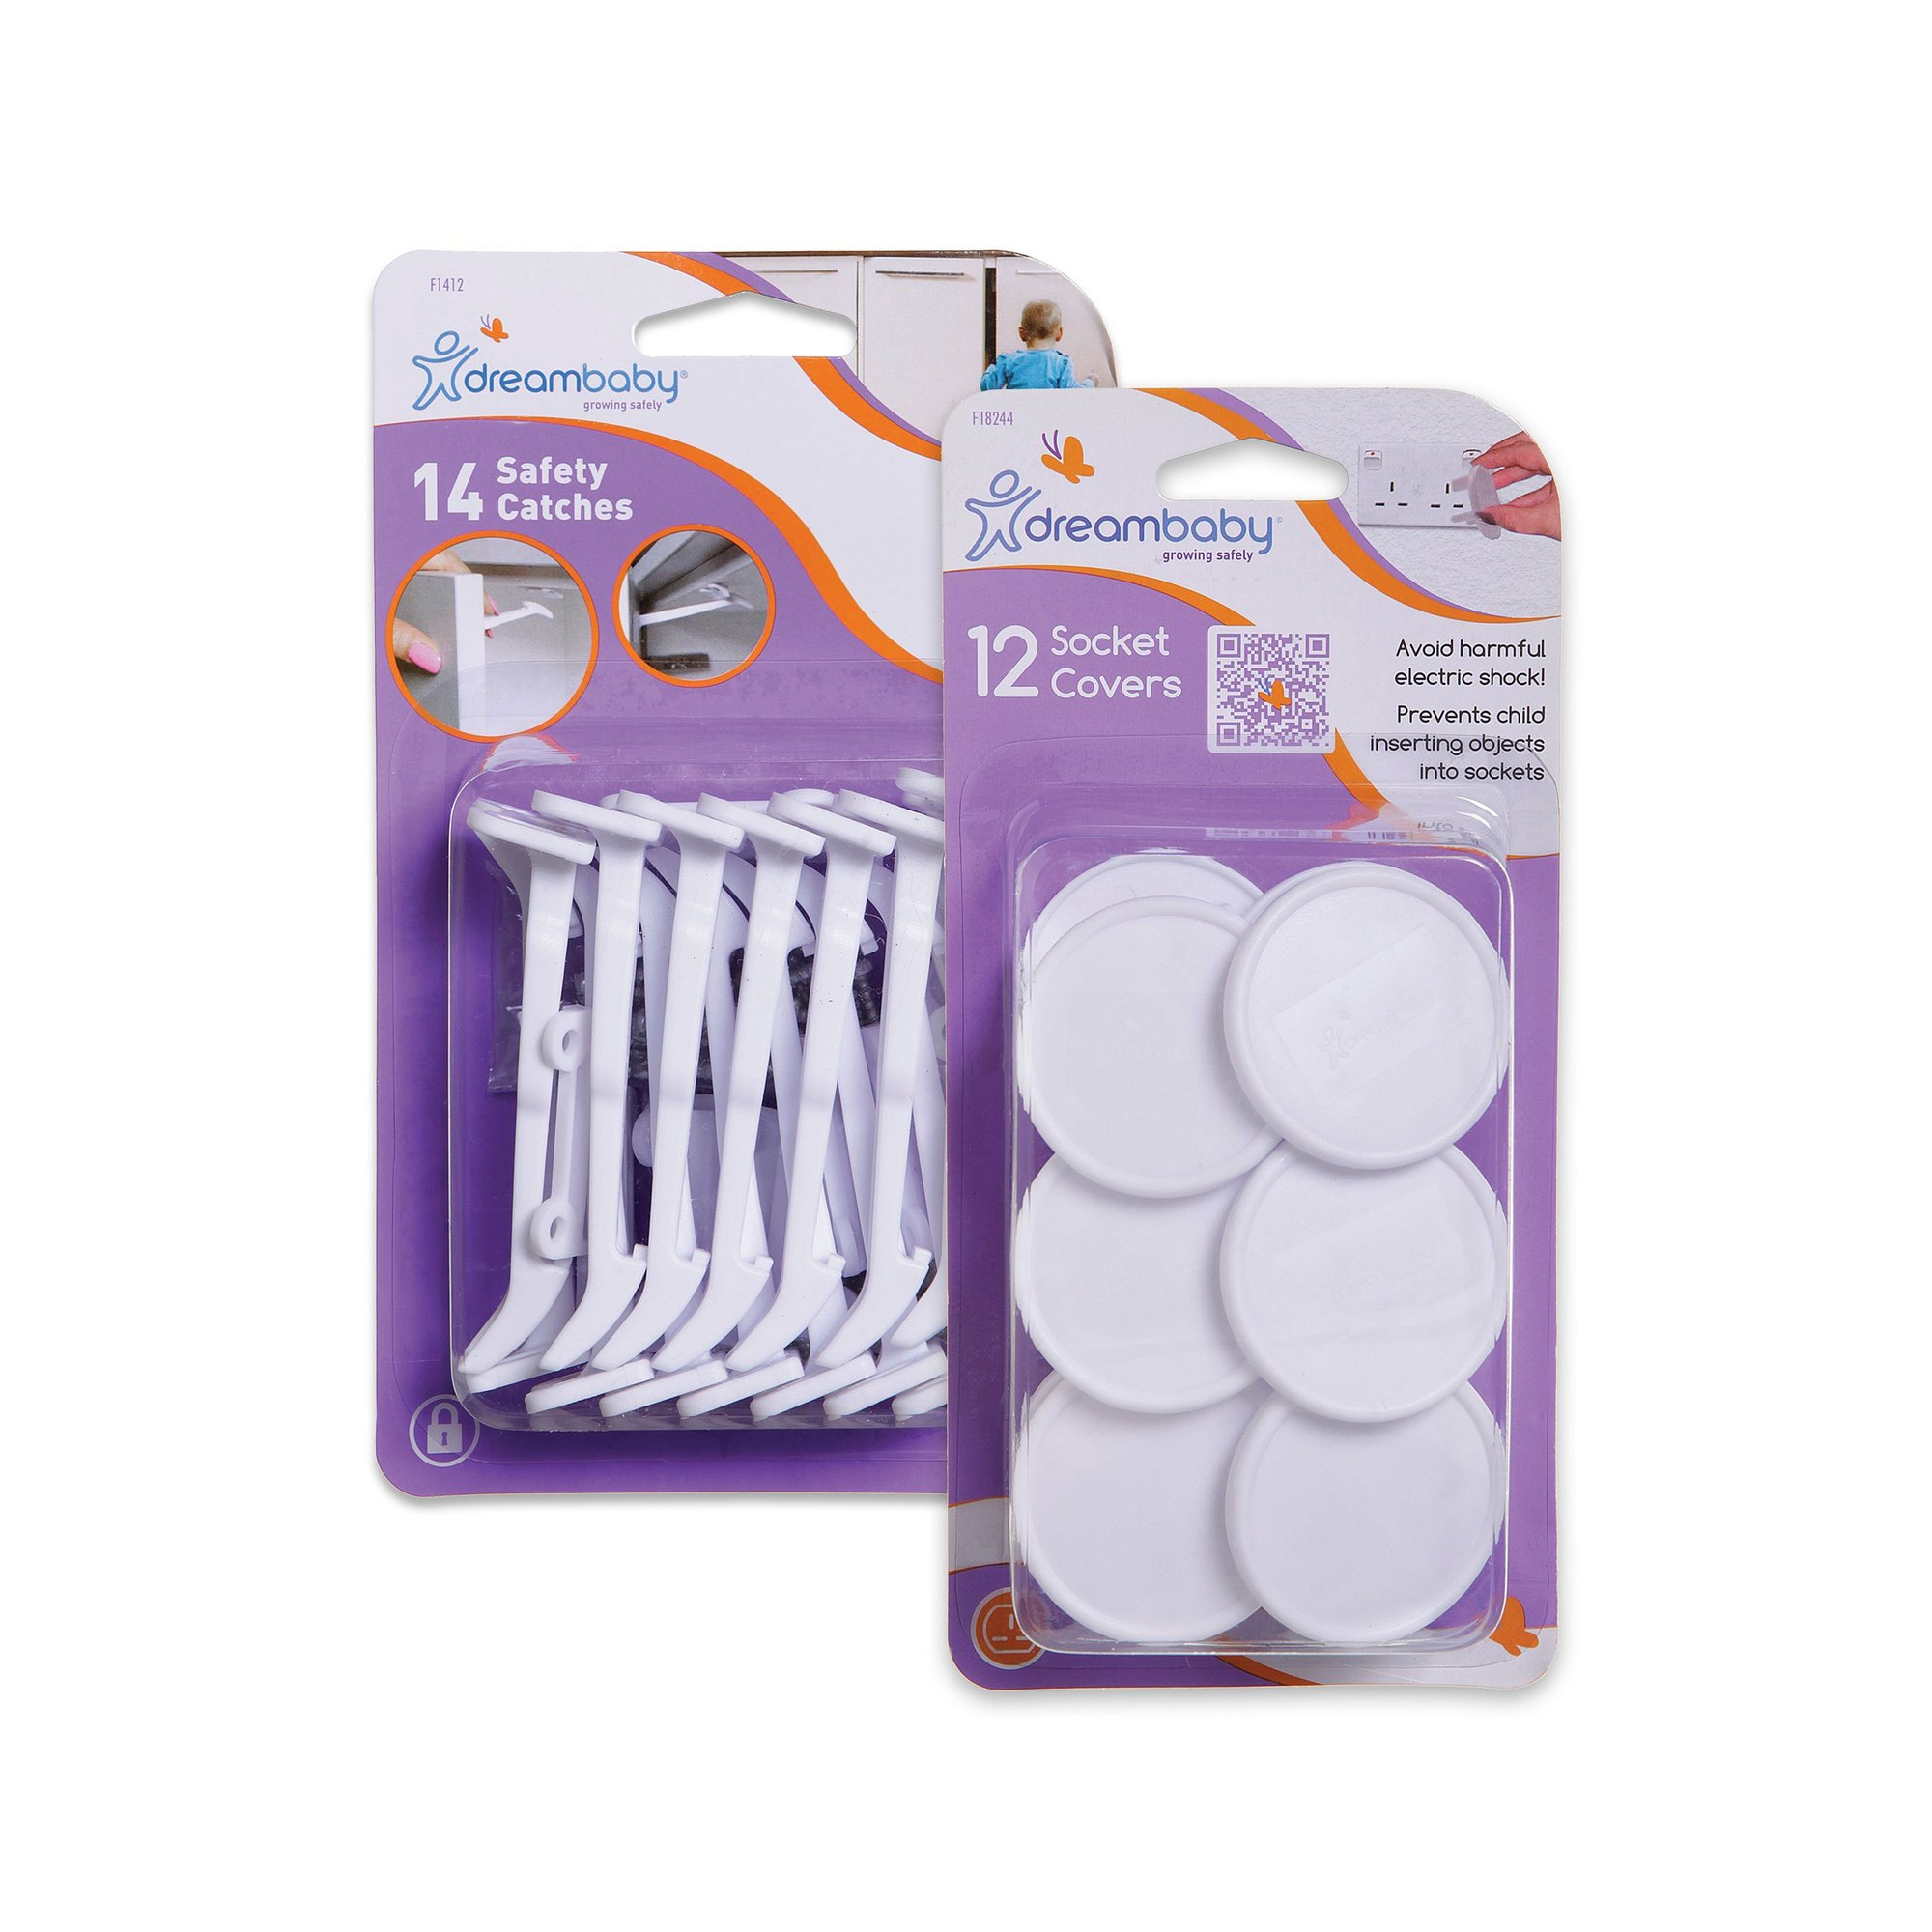 Image of 14 Safety Catches and 12 Socket Covers Value Pack